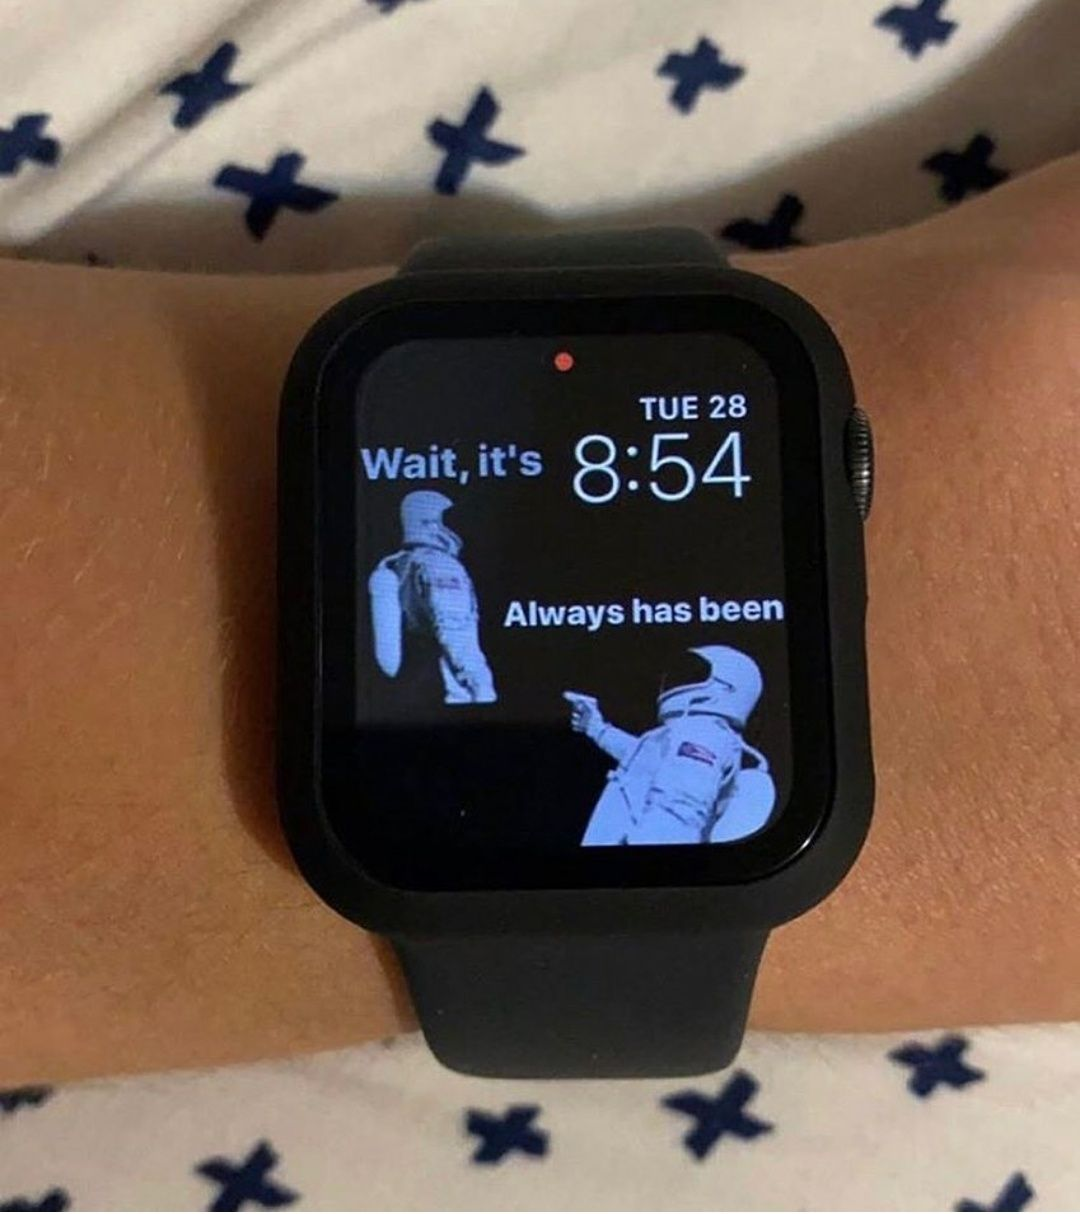 That's my ideal watch